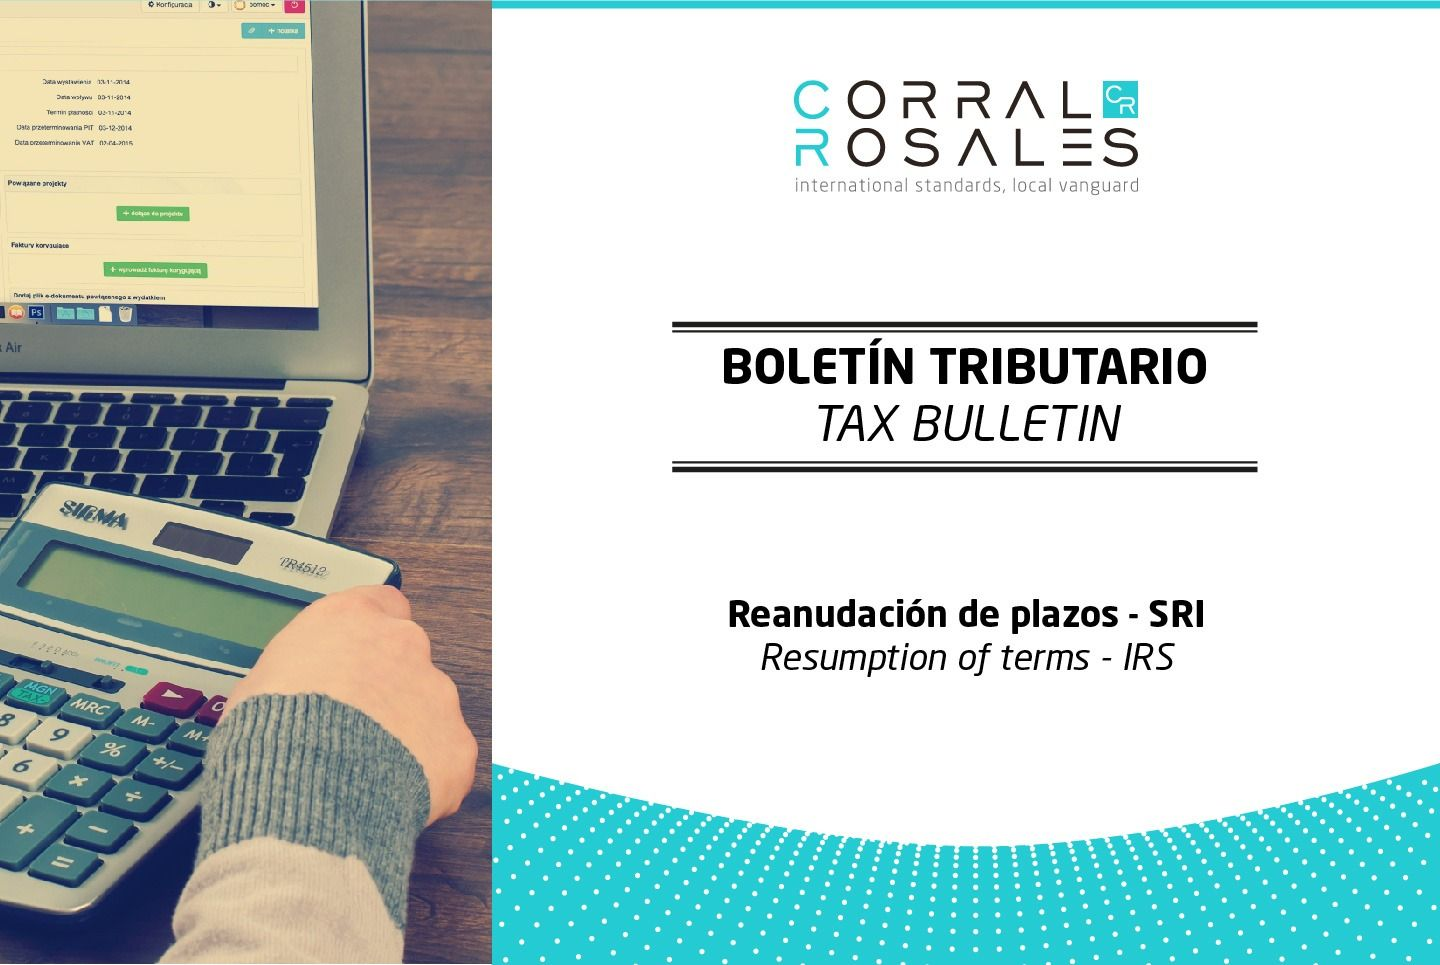 resumption-of-terms-irs-tax-lawyers-ecuador